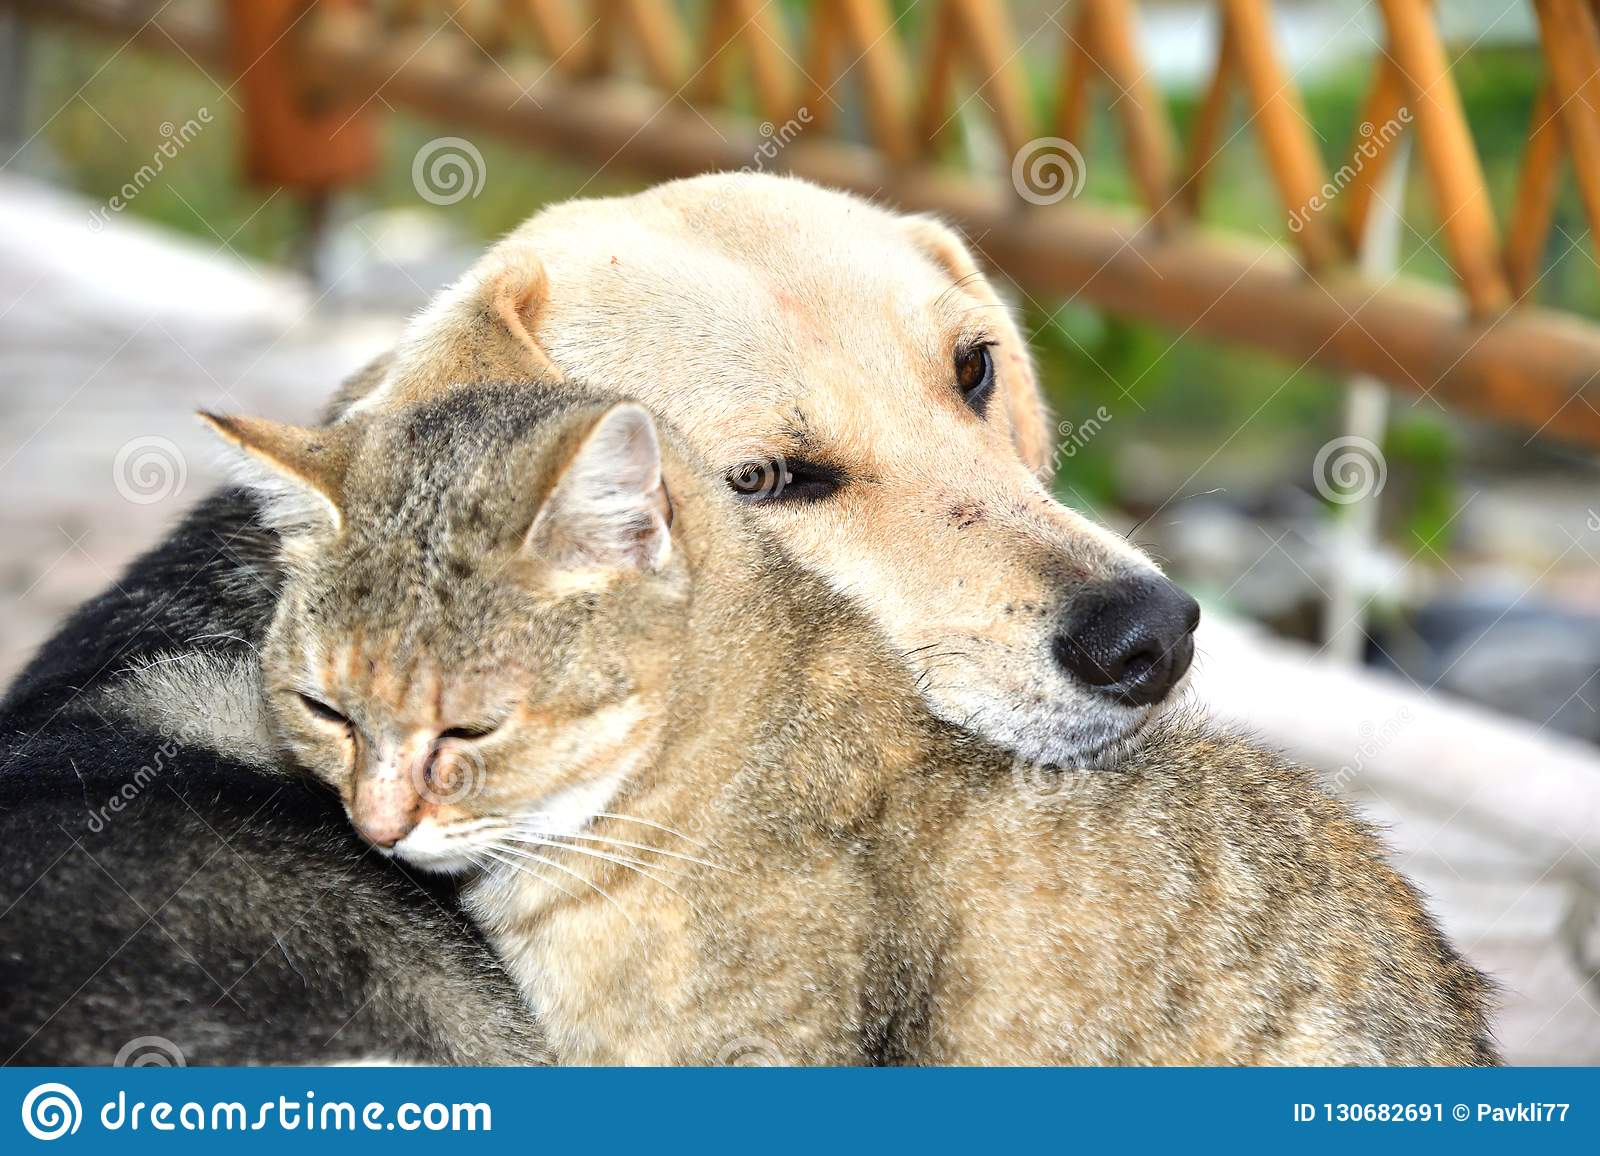 dog-cat-to-snuggle-animal-love-best-friends-sleep-as-130682691[1]